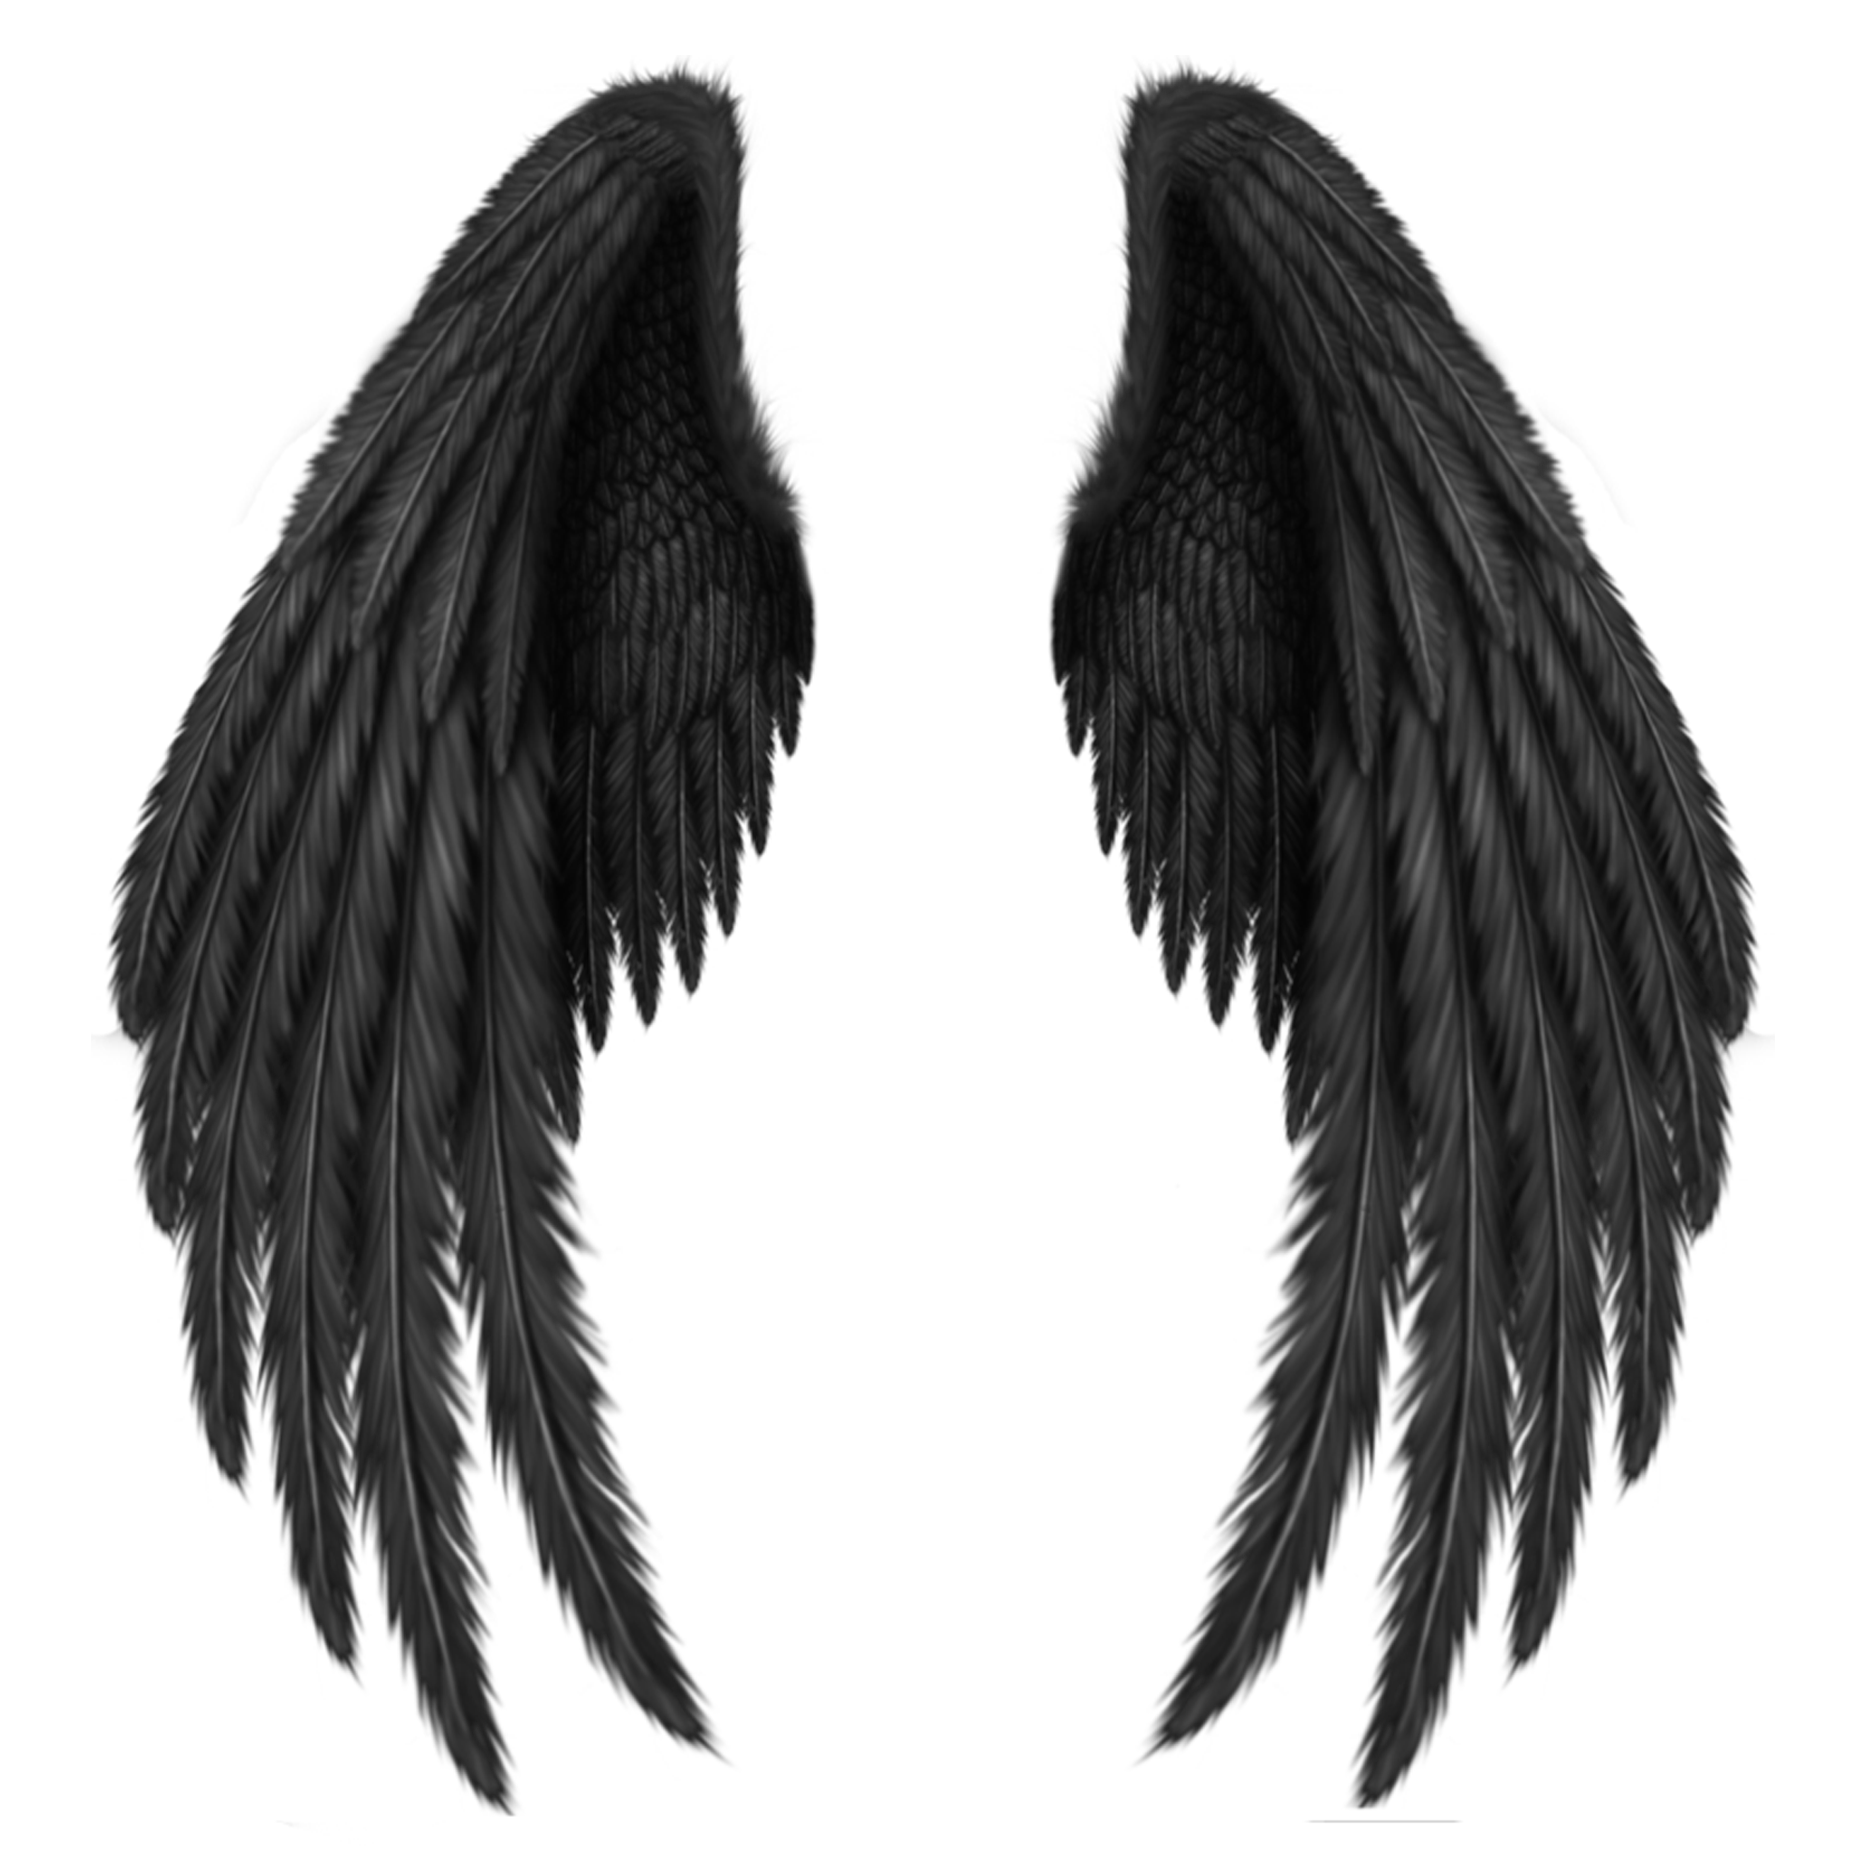 Cross and wings clipart clip art transparent Transparent Black Wings PNG Clipart Picture | Artistically and ... clip art transparent